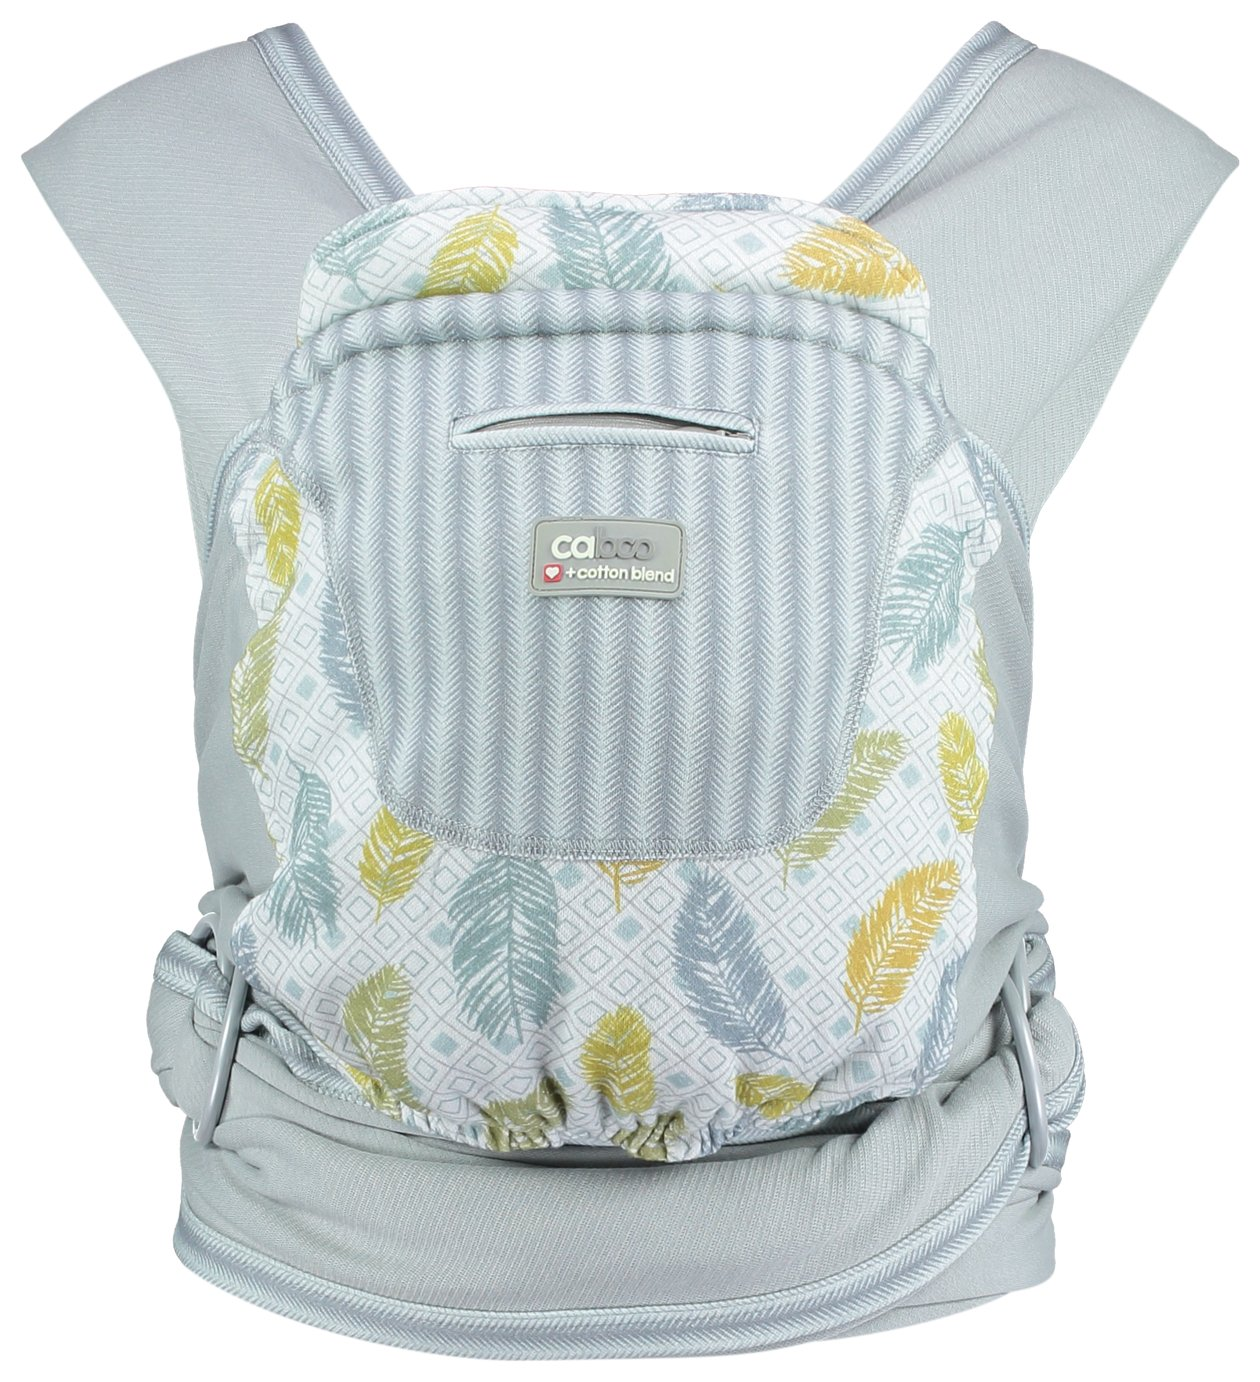 Image of Caboo + Cotton Blend Newborn Carrier - Fearne